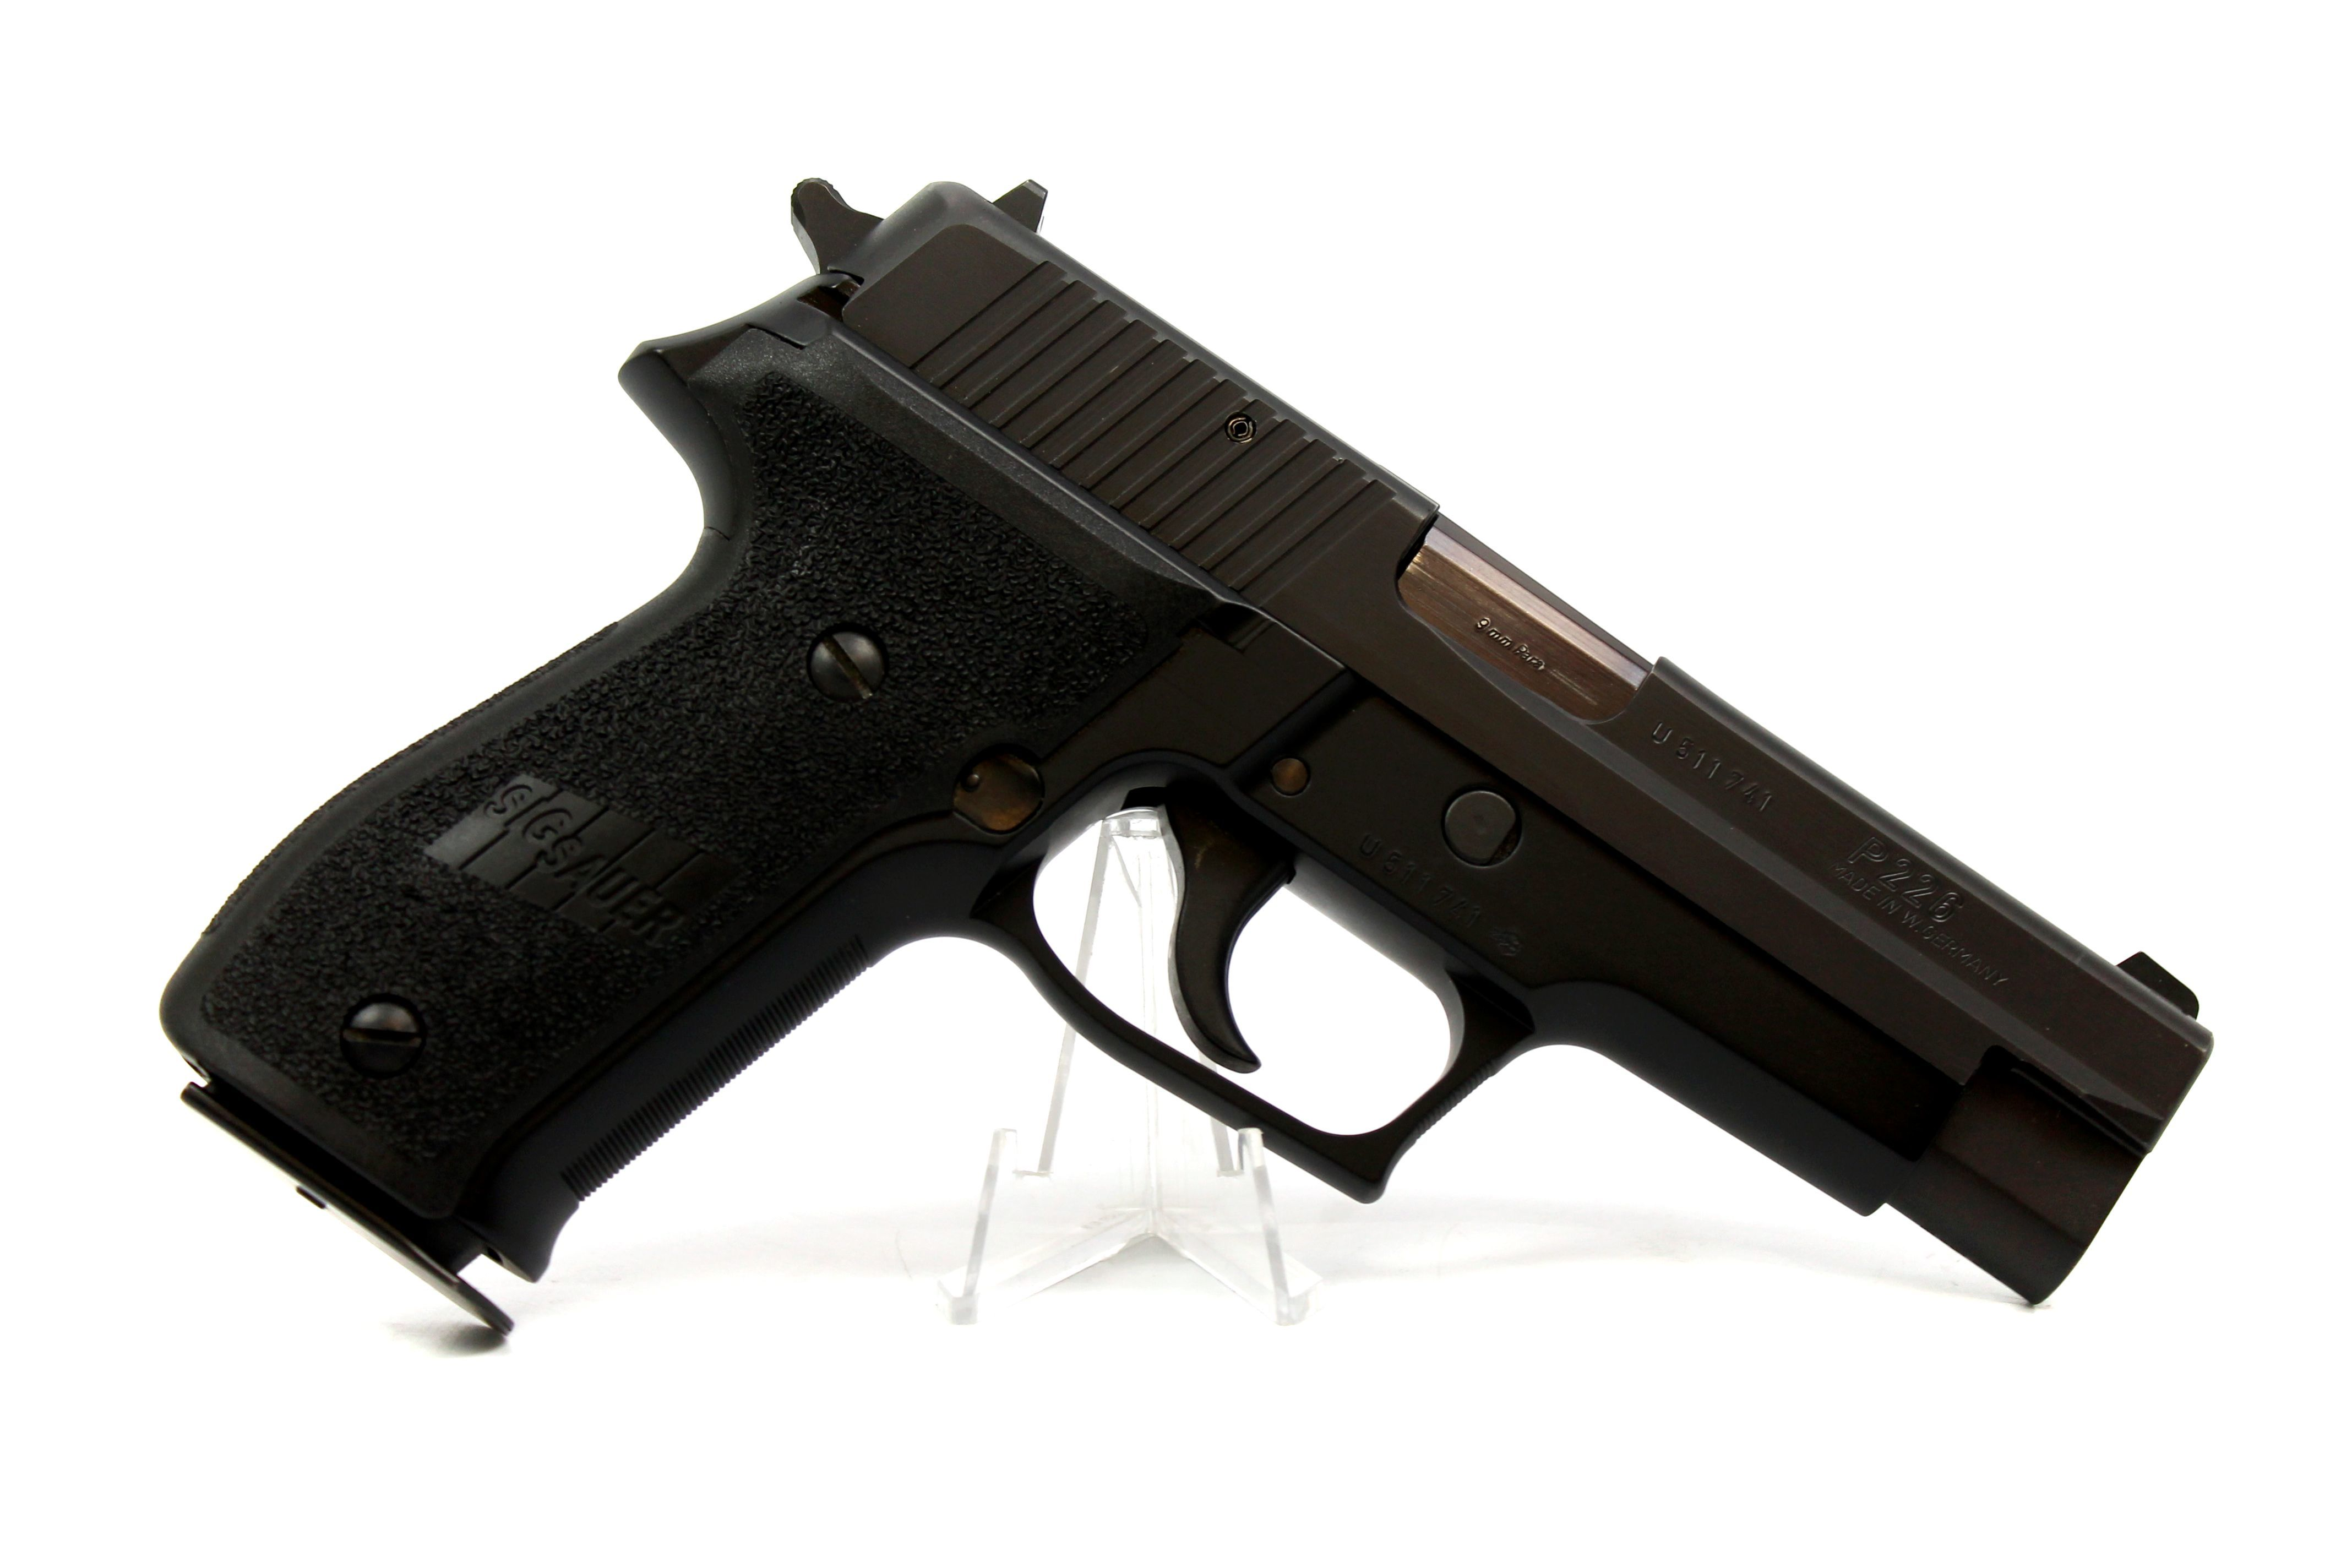 1994 Sig Sauer P226 West German 9mm Single/Double Action Semi-Automatic Pistol-LNIB